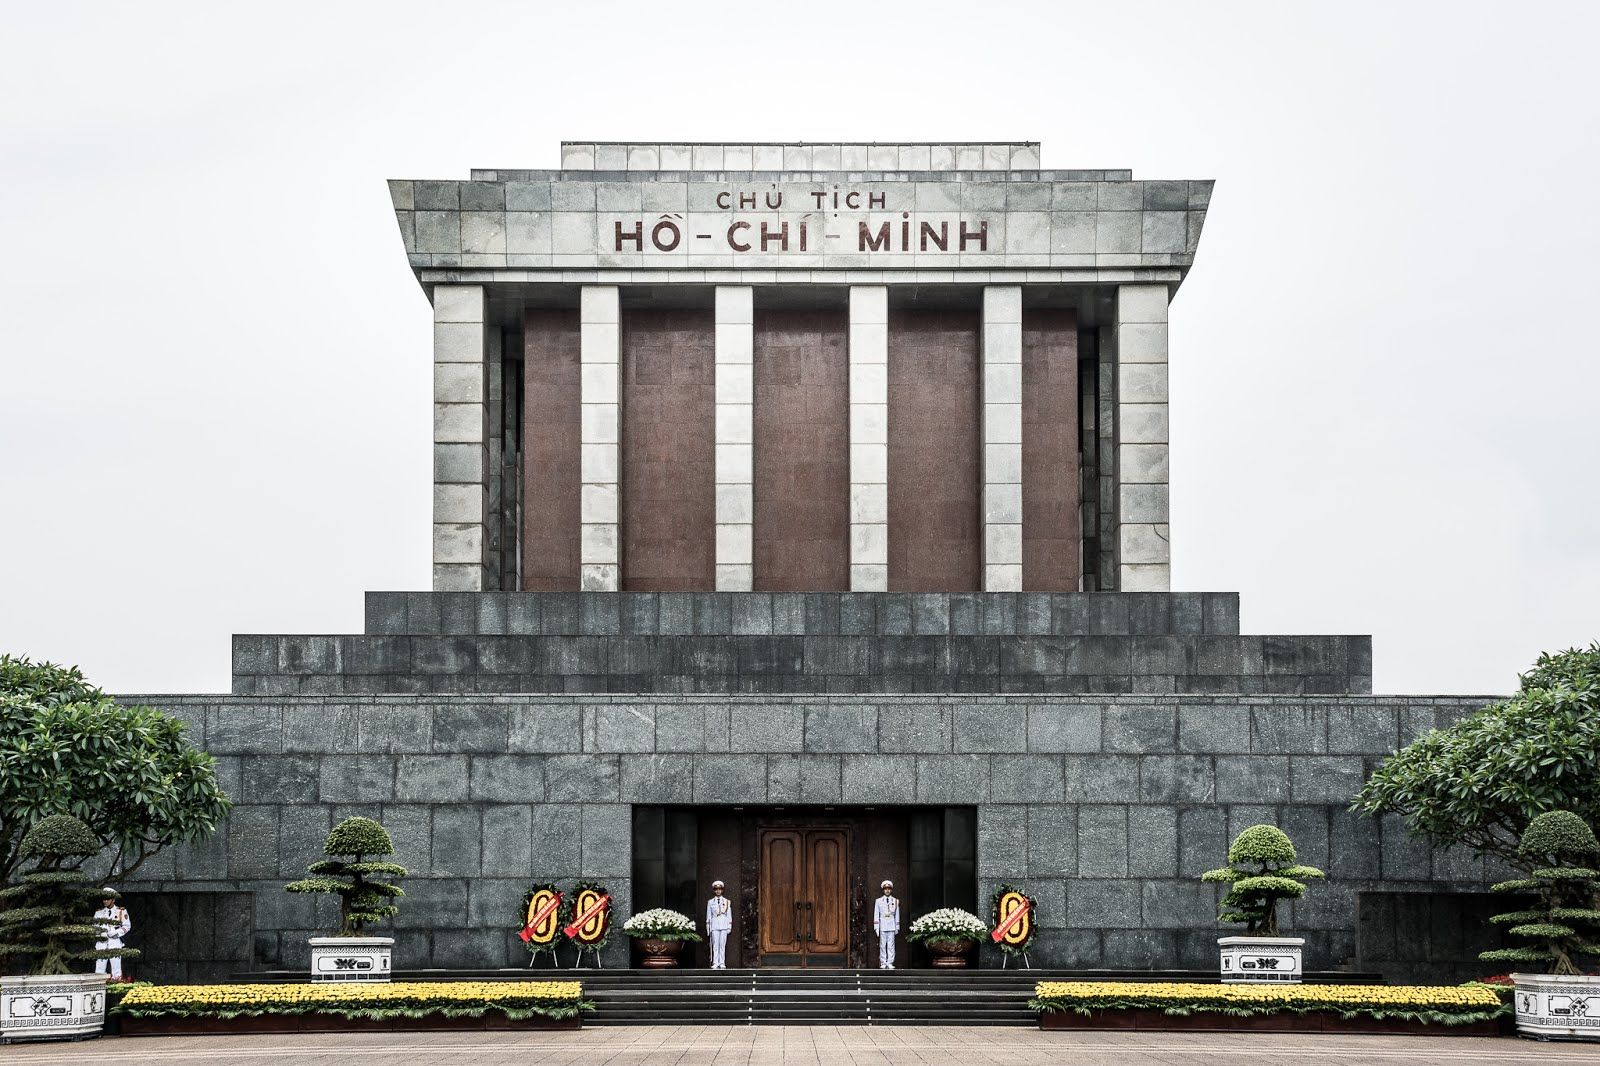 The mummy of their first president Ho Chi Minh was embalmed & display in a mausoleum.